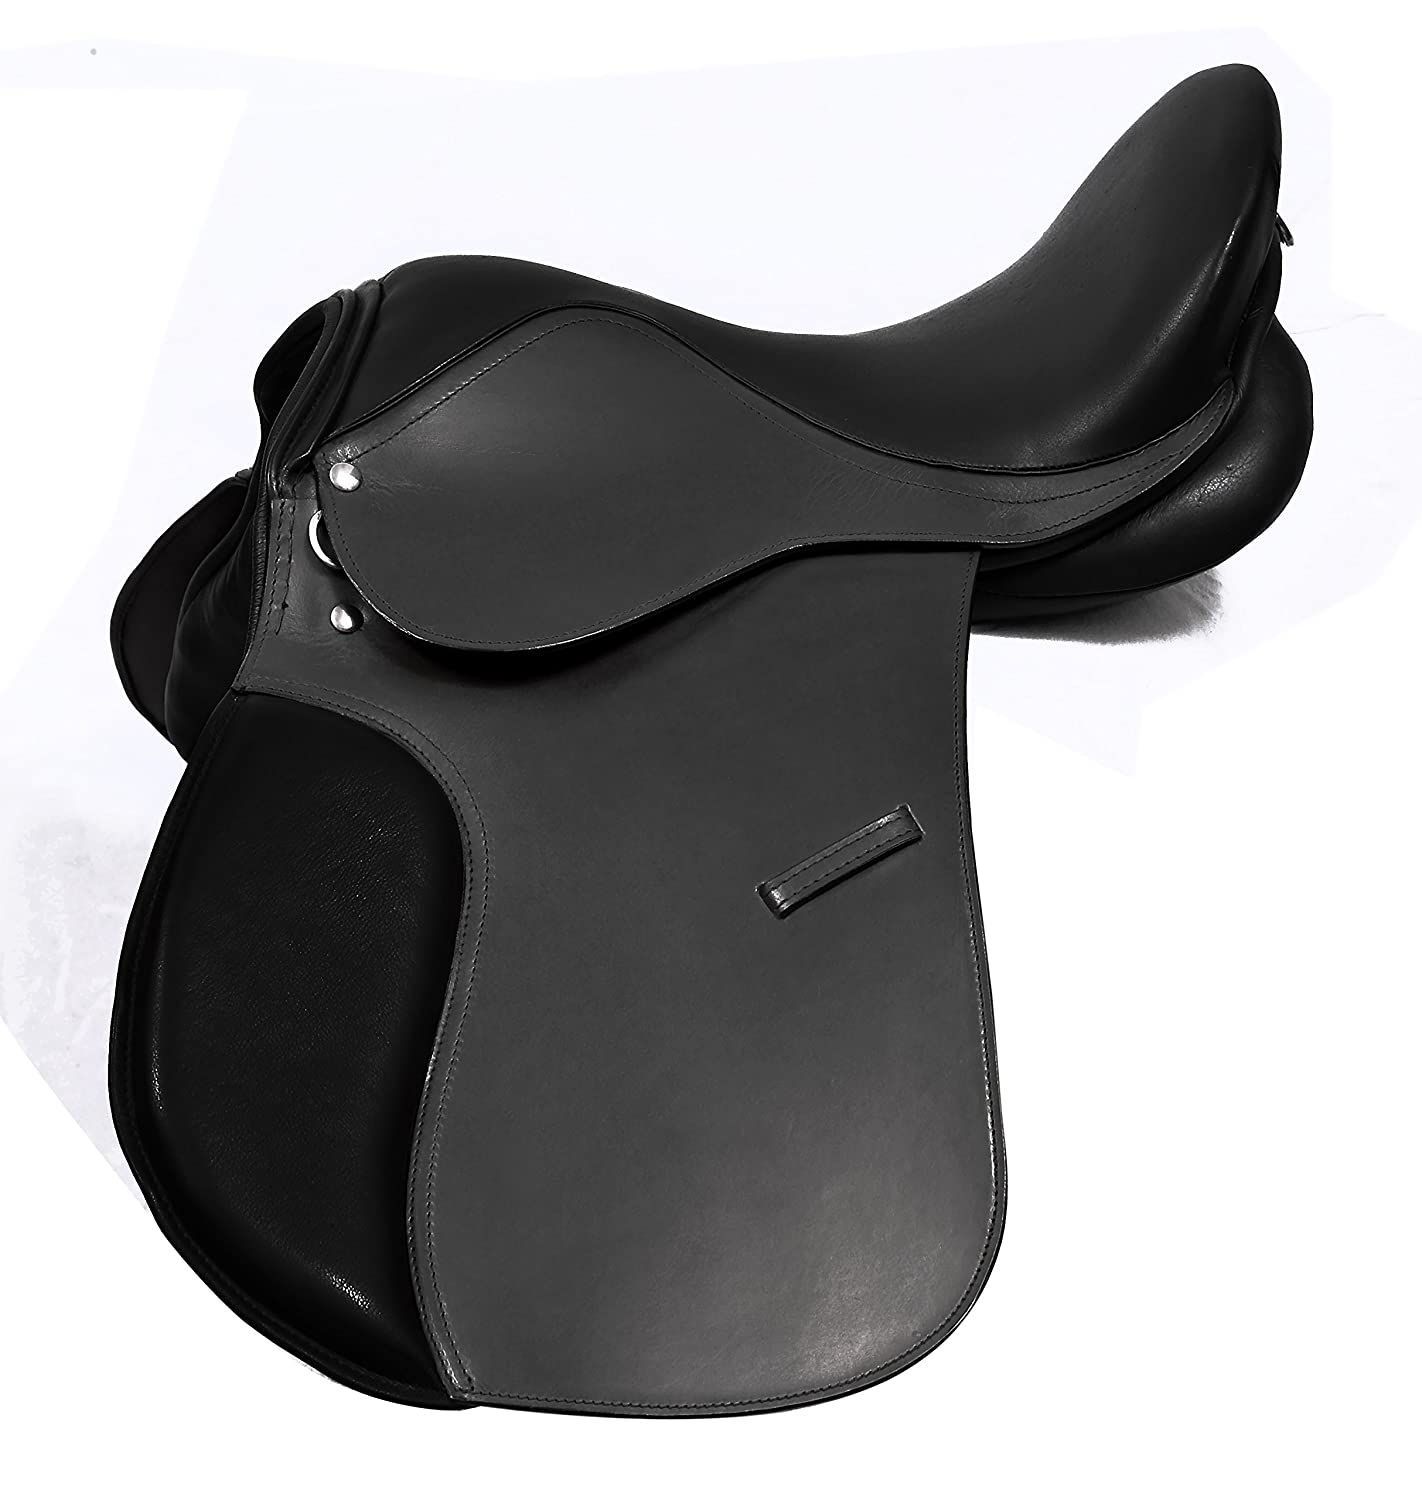 LEATHER GENERAL PURPOSE HORSE SADDLE COMFY SEAT, BLACK & BROWN COLOR SIZE 18 WIDE FIT TACK EQUESTRIAN PETS2CARE